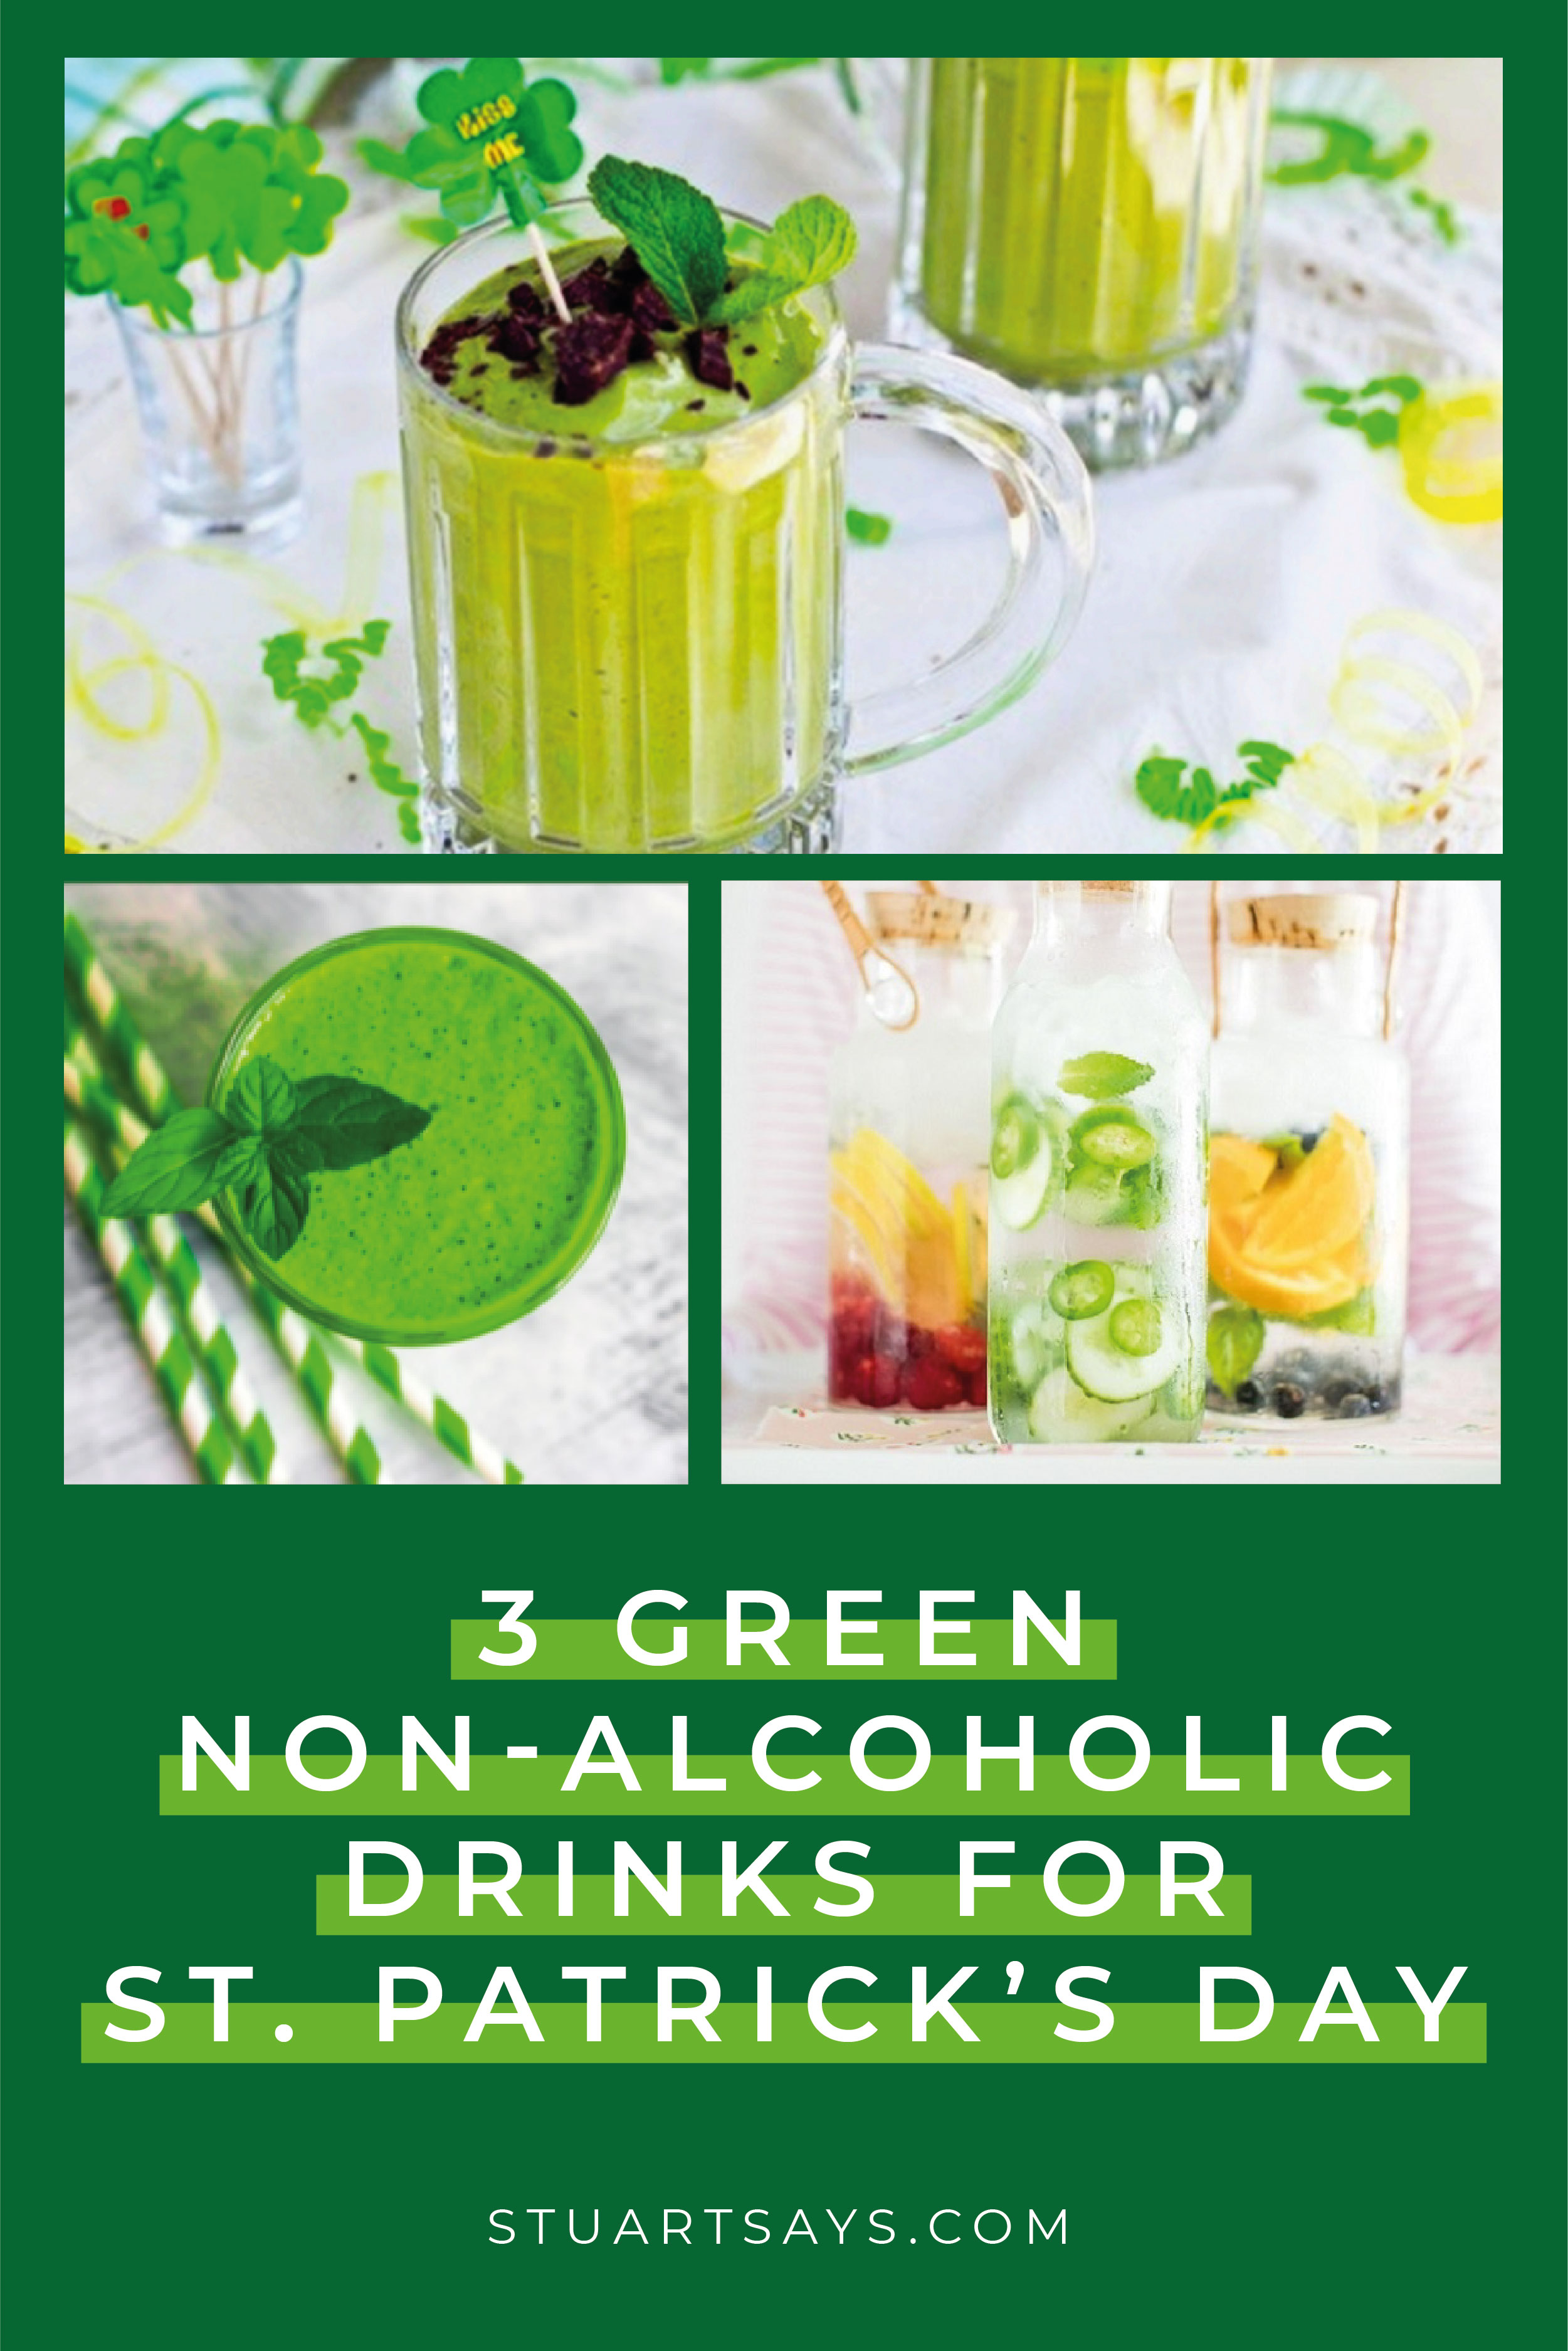 3 Green Non-Alcoholic Drinks for St. Patrick's Day